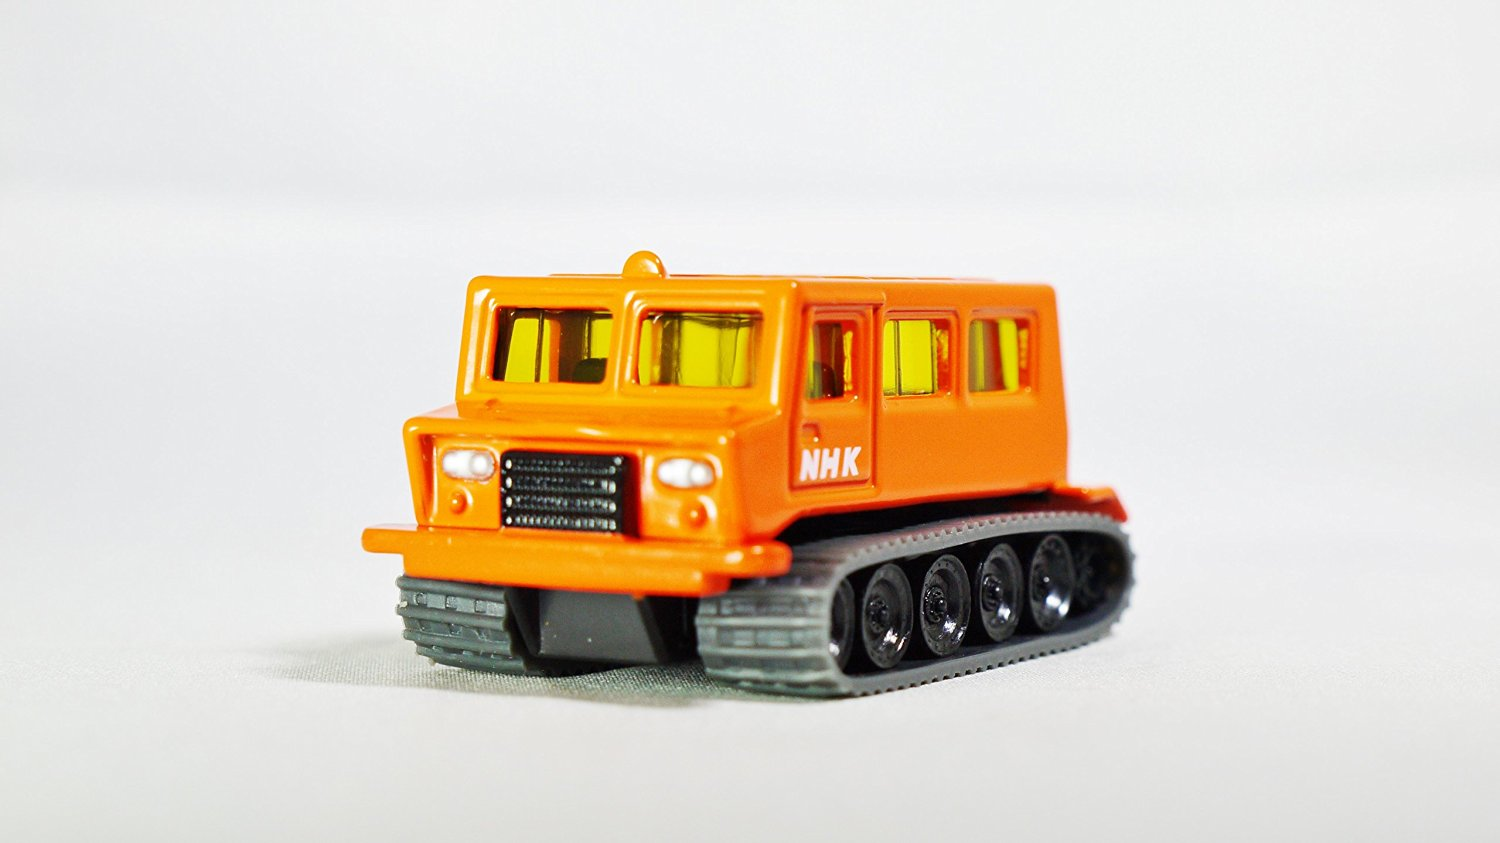 TAKARA TOMY TOMICA Commercial NHK OHARA SNOW TIGER SM30 Vehicle Diecast Orange Color